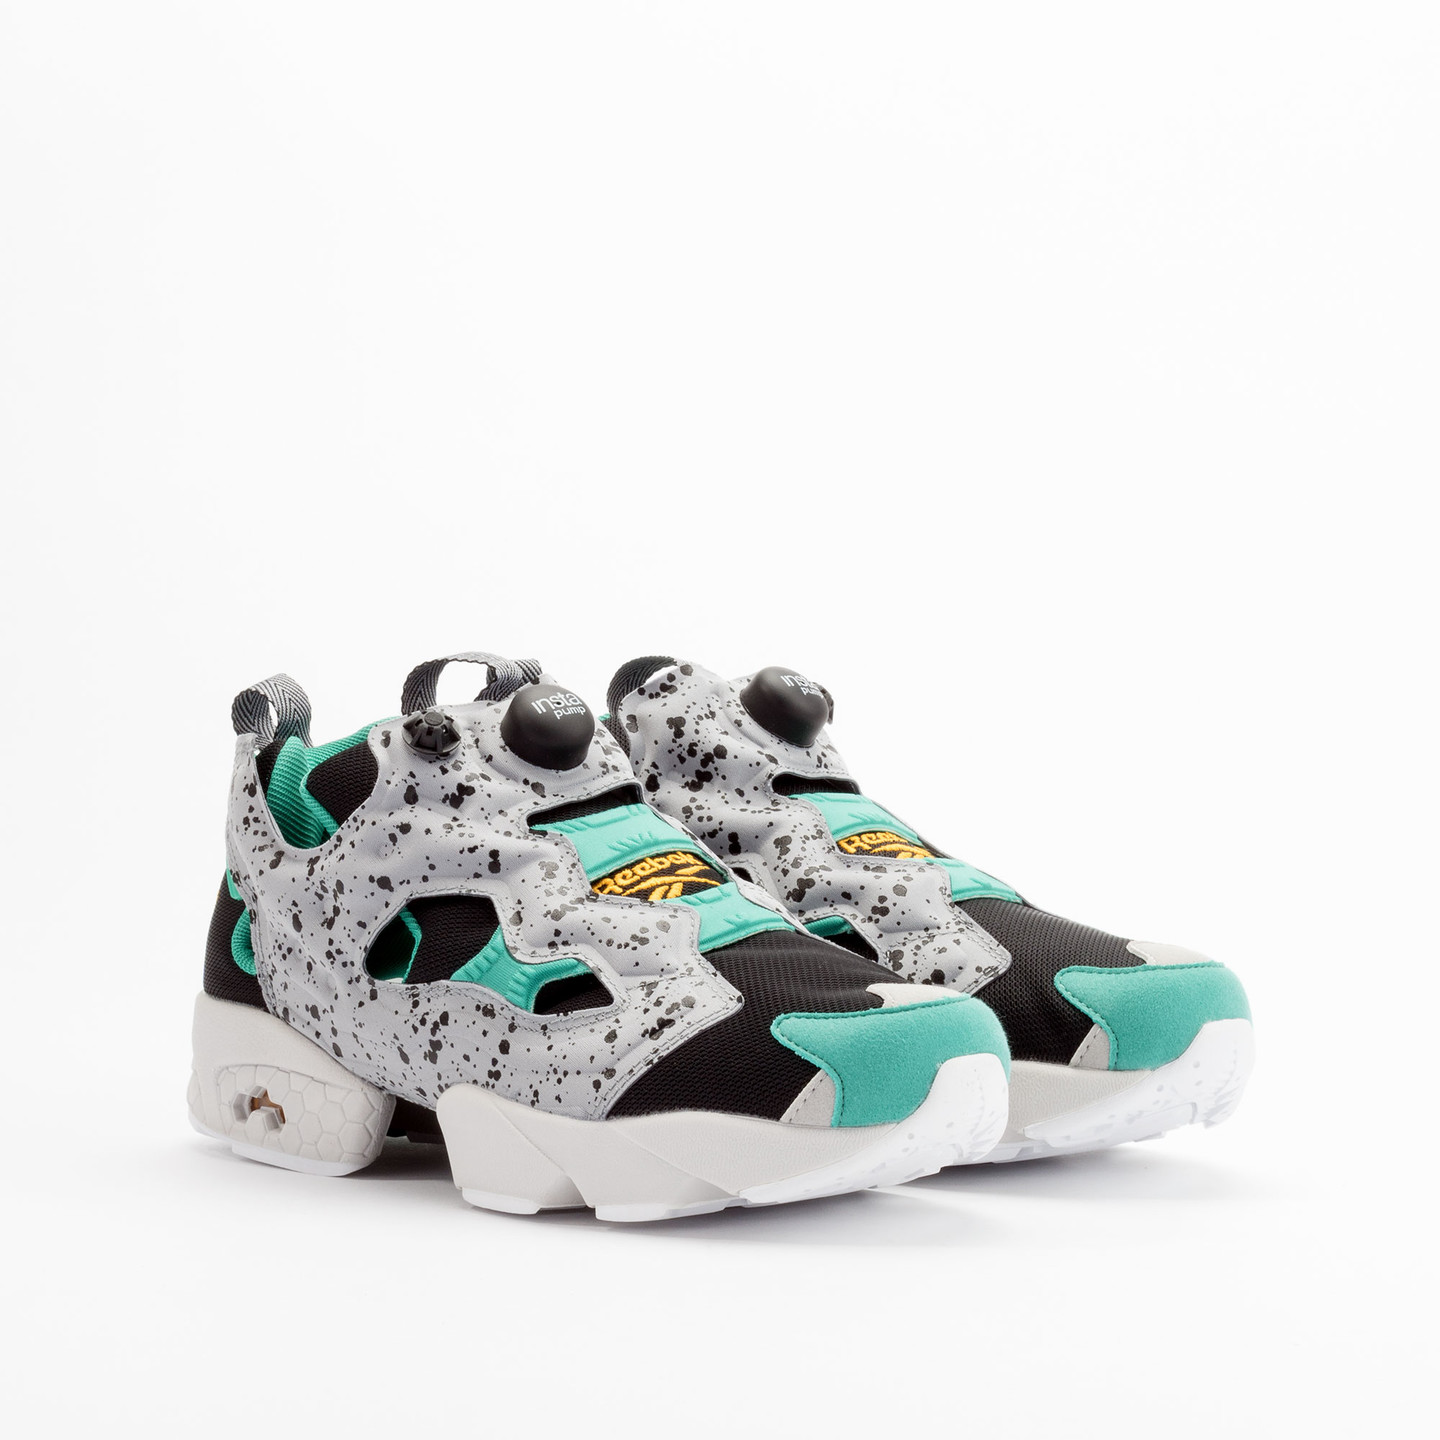 Reebok Instapump Fury SP Black / Grey / Green / Gold V66115-45